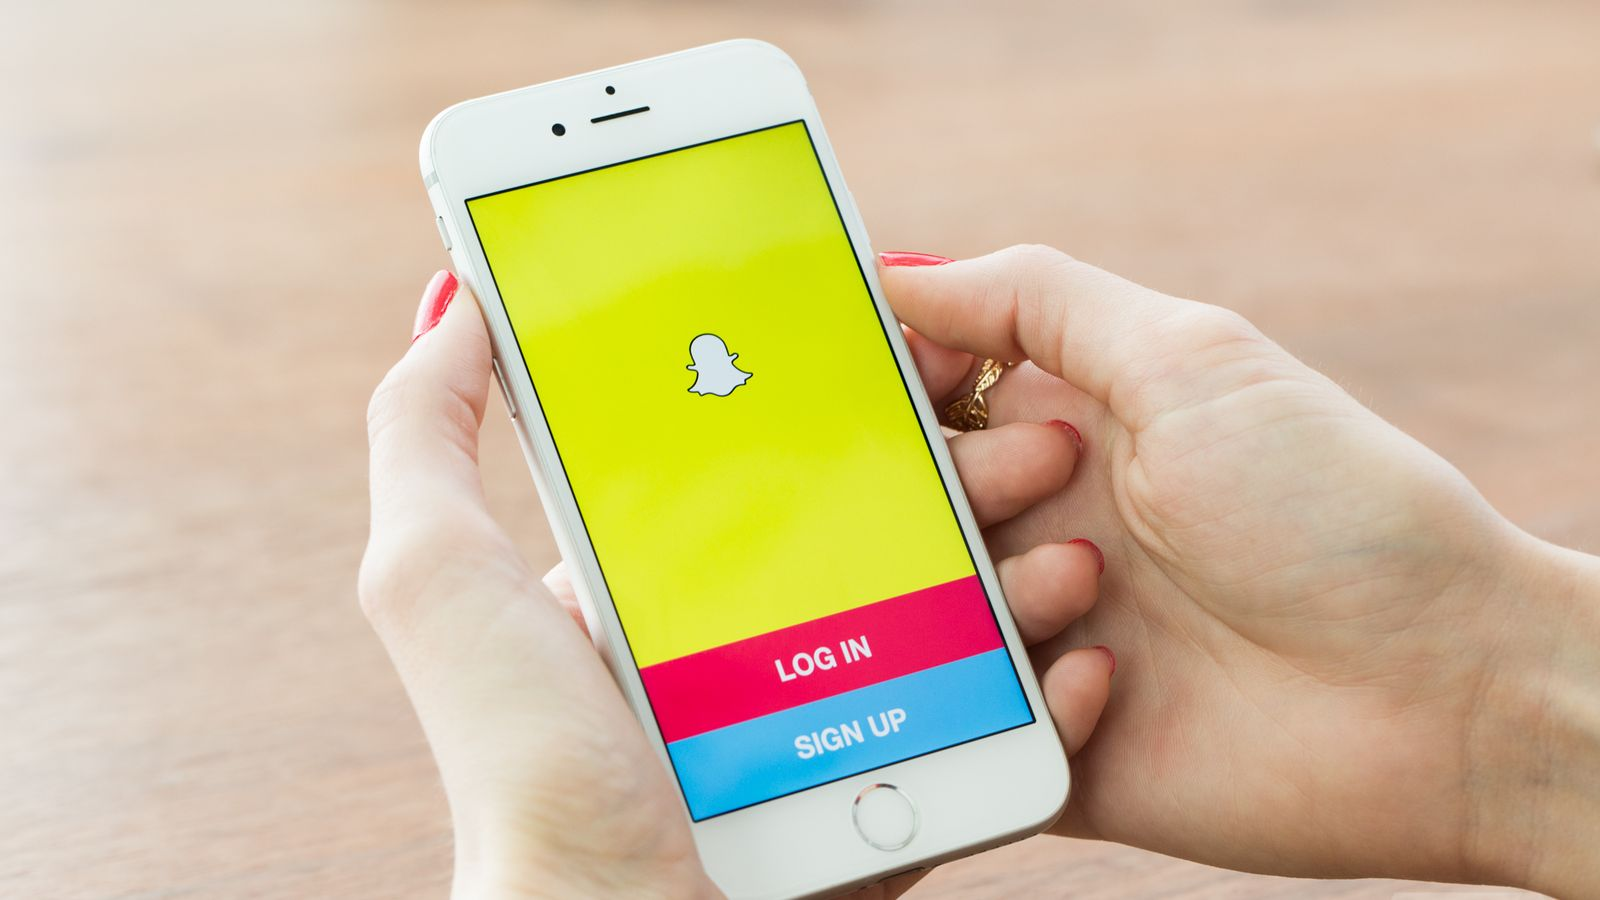 Logging into Snapchat unlocks a world of entertainment, right at the tips of your fingers!